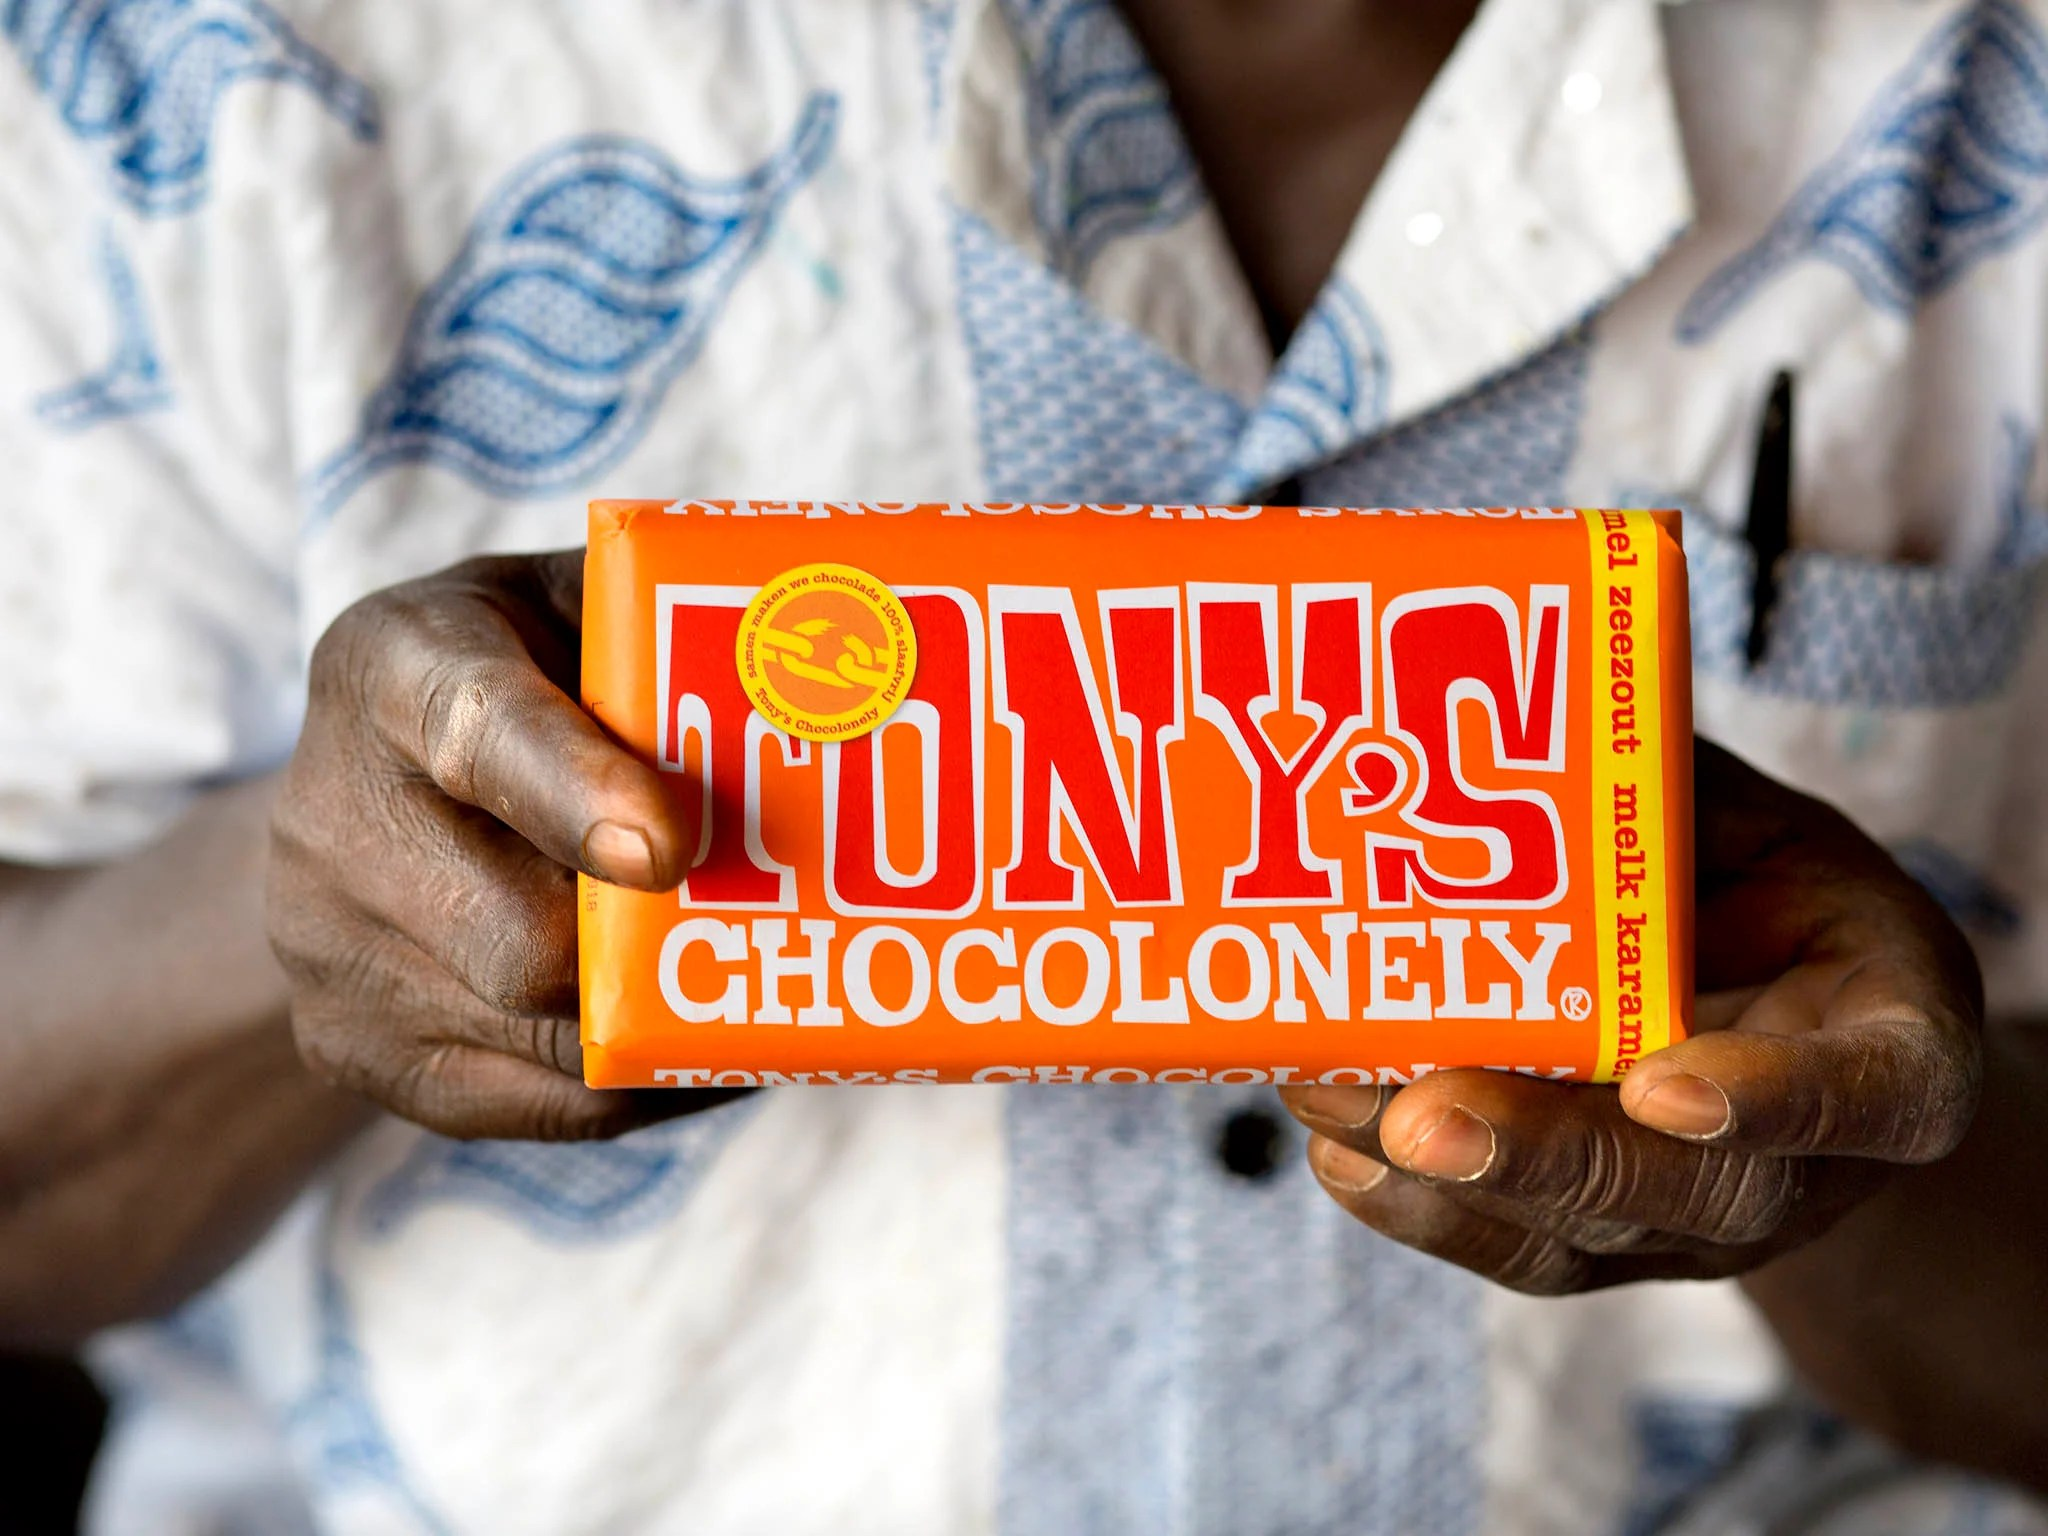 Teun Van Der Keuken Tony Chocolonely How Tony's Chocolonely Chocolate Brand Plans To End